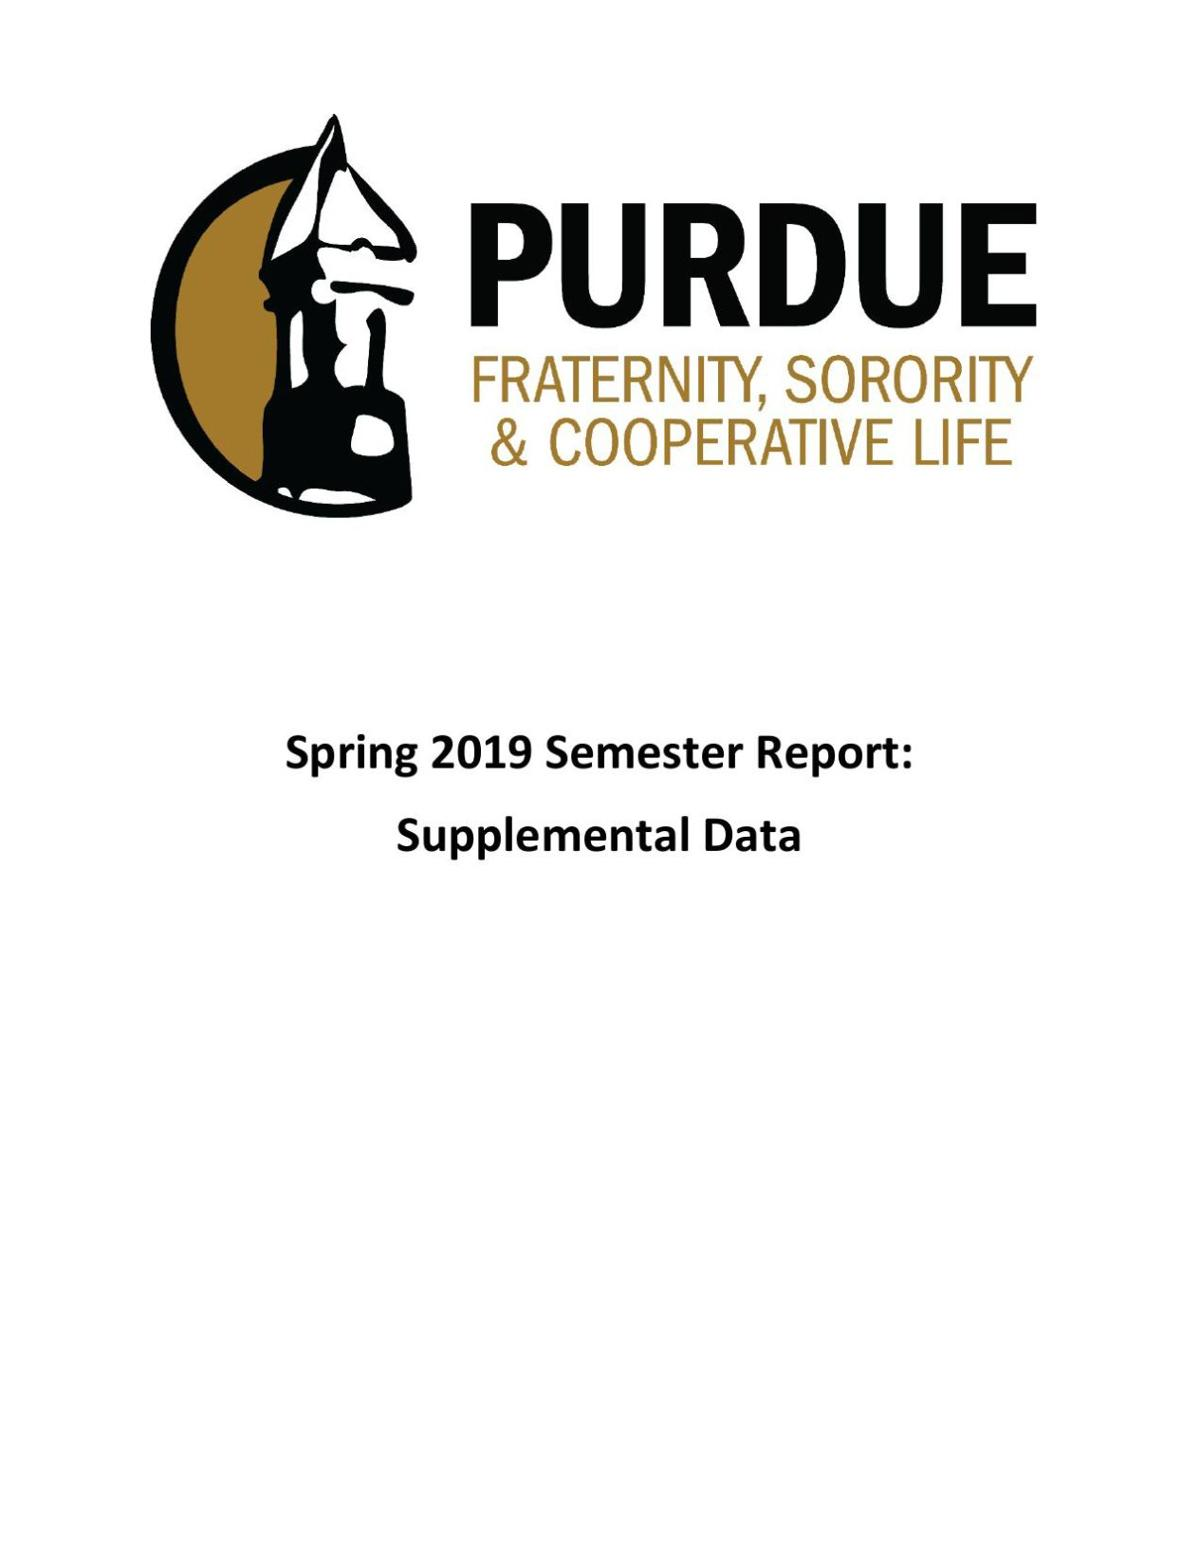 Fall 2019 Fraternity, Sorority & Cooperative Life Supplemental Report